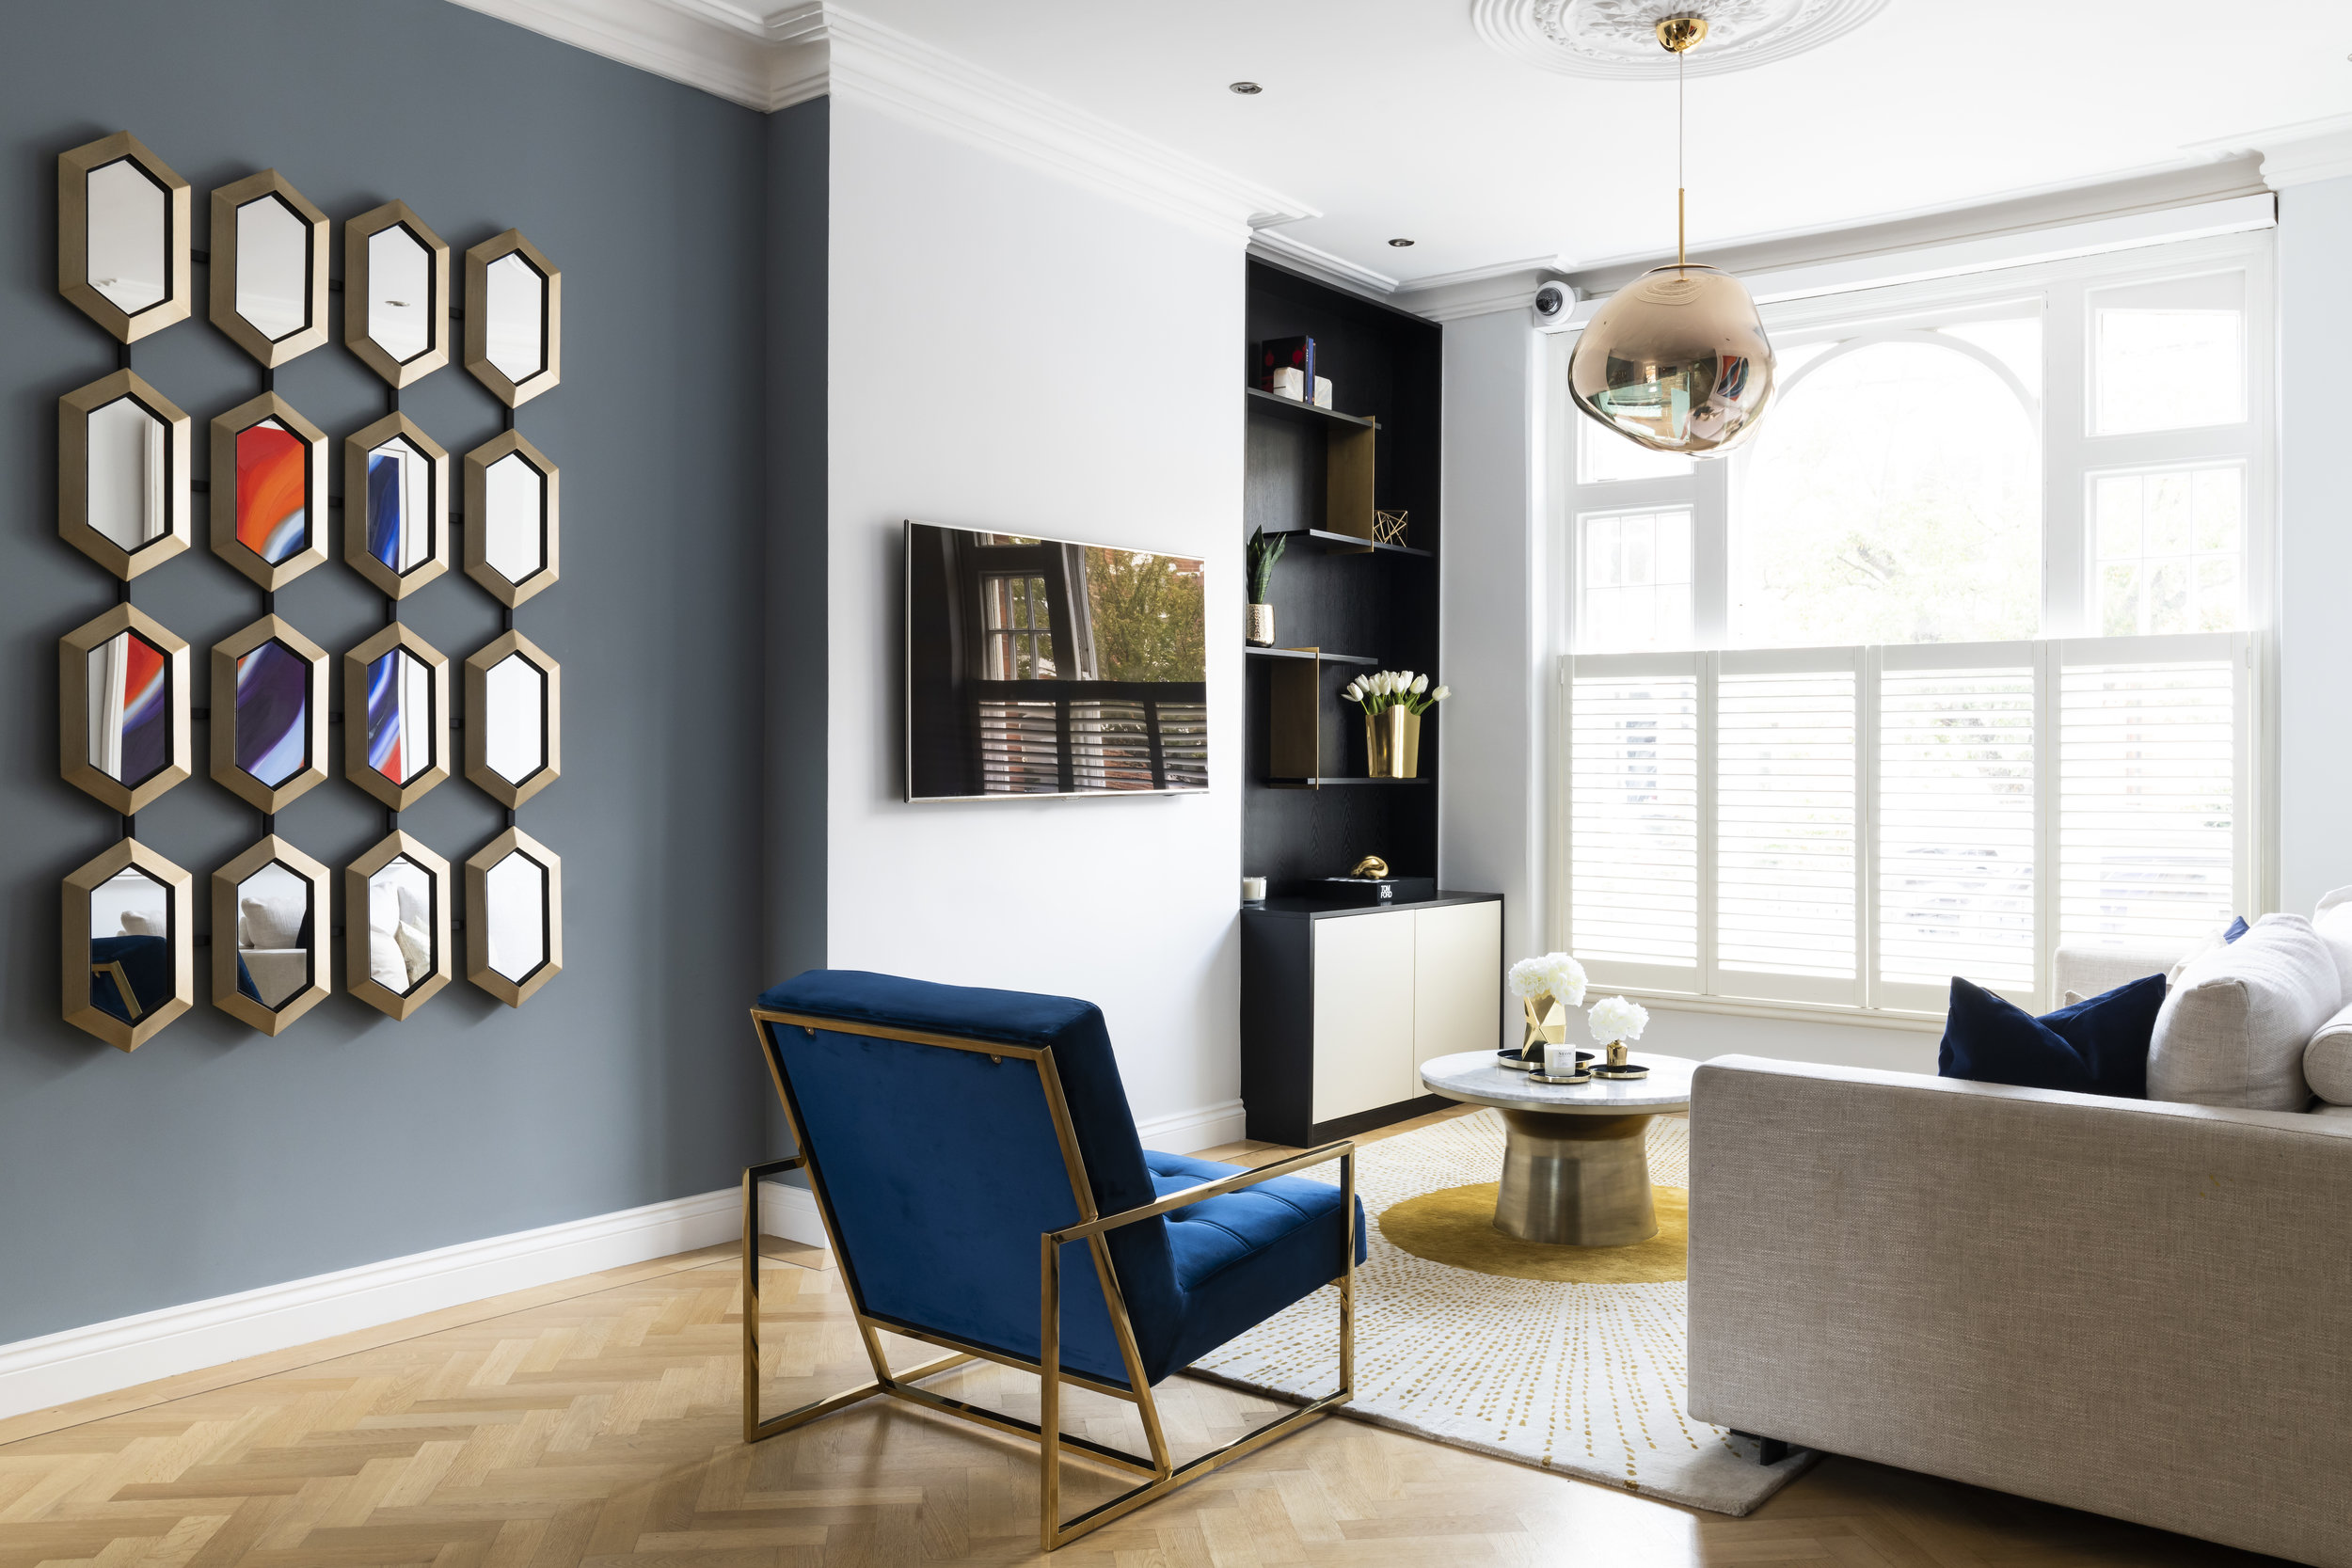 Tailored interiors to transform your home, regardless of budget -